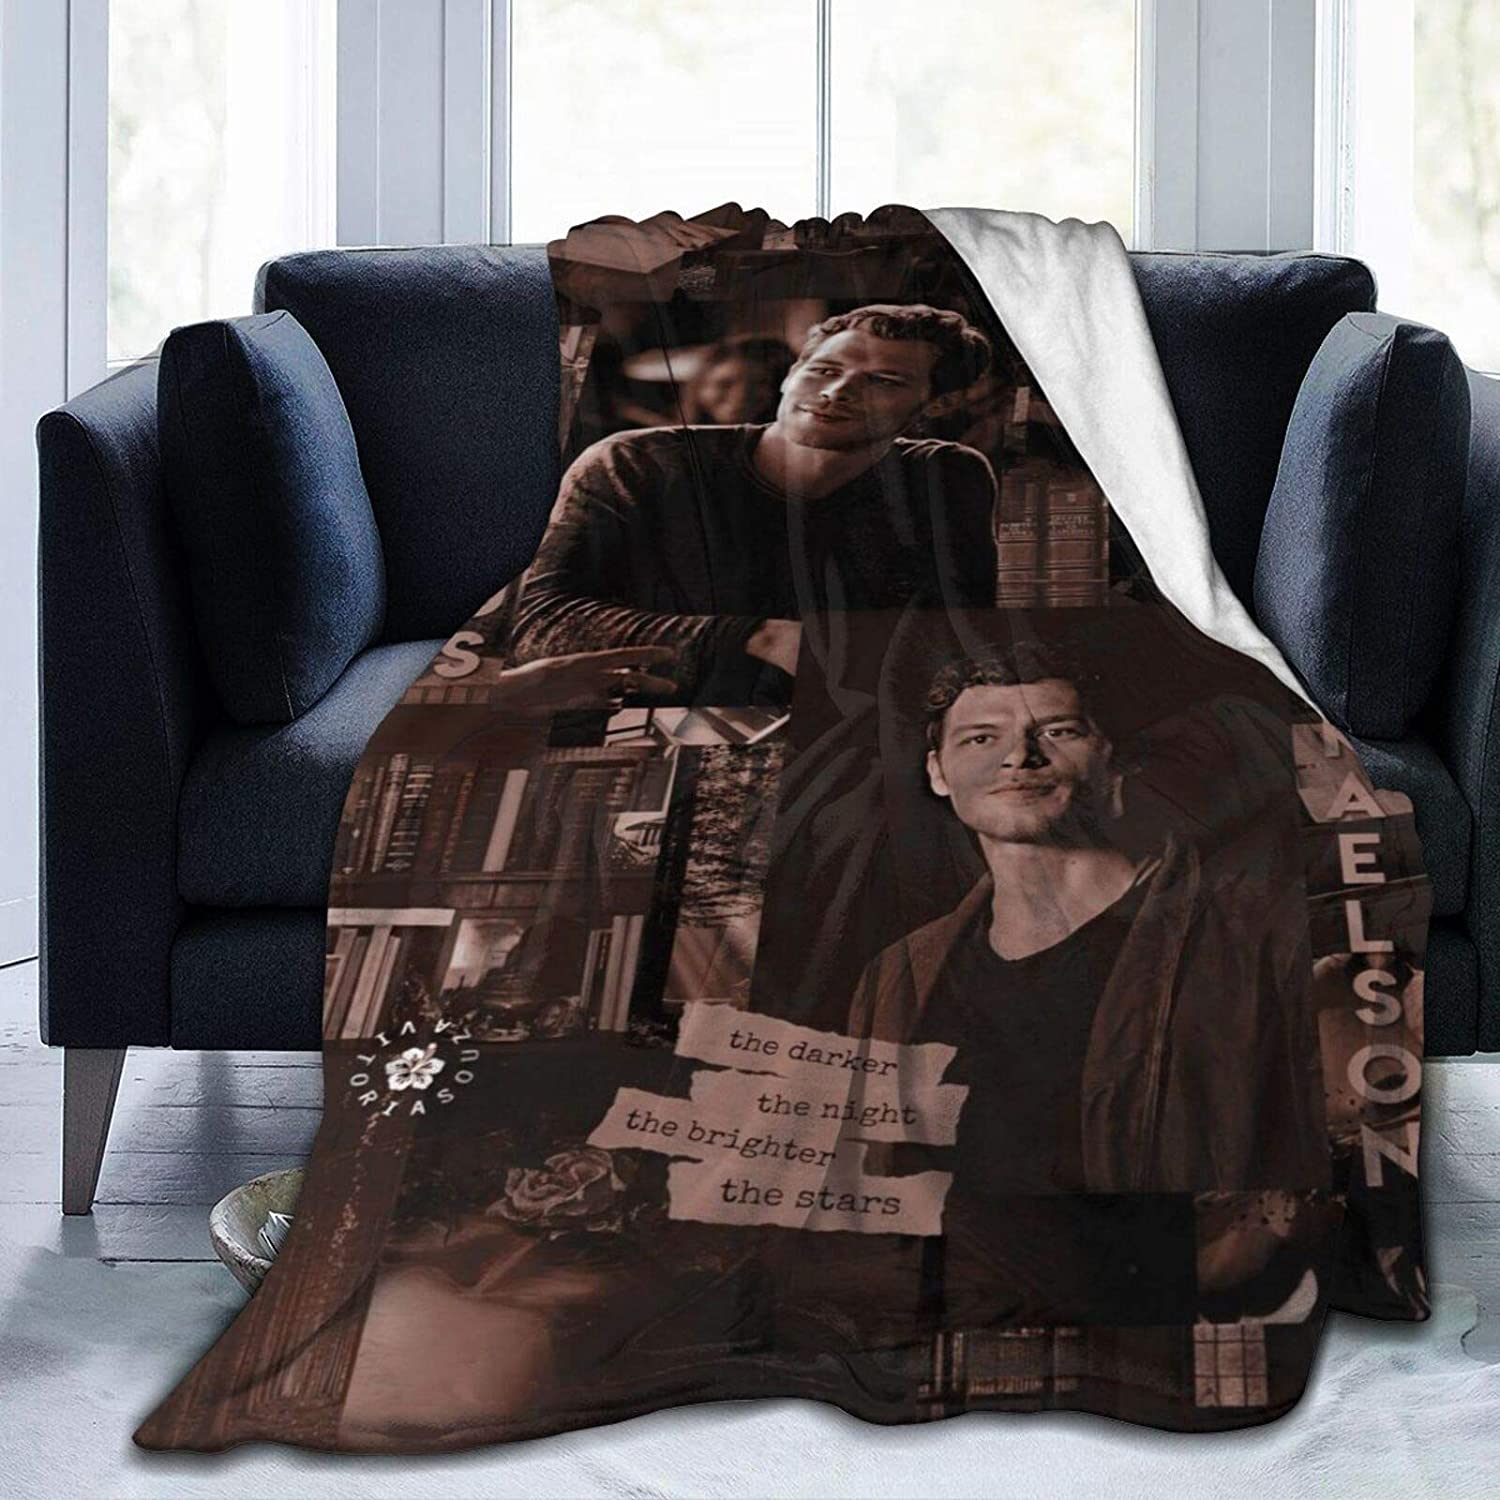 Vam-Pire Klaus-Mikaelson Movie Watching Blanket for Kids Adult,Anti-Pilling Flannel Plush Throw Blankets for Bed Sofa Living Room 50X40